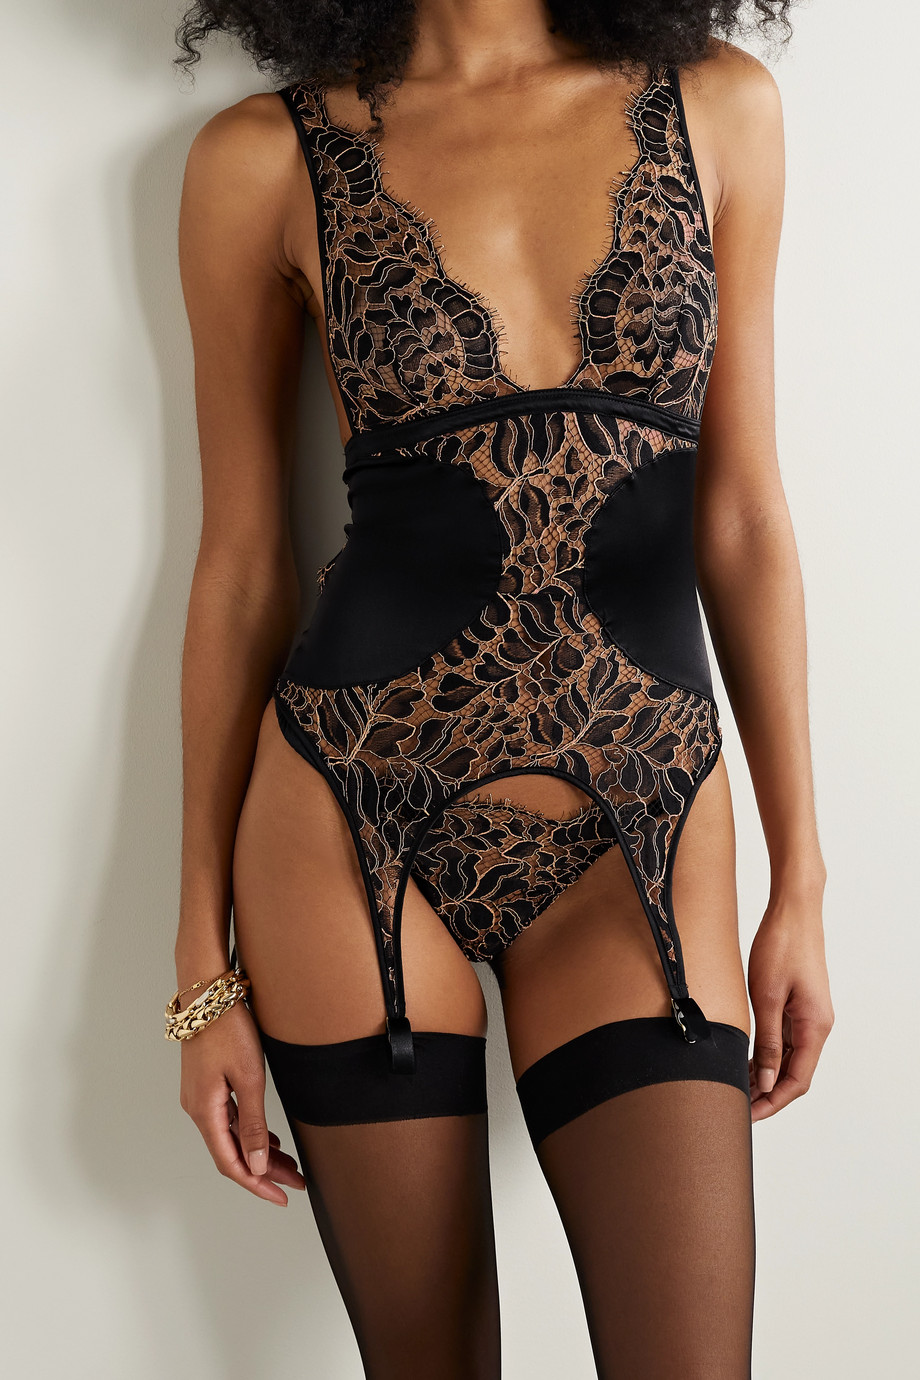 Coco de Mer Rivera cutout corded lace and satin camisole with suspenders